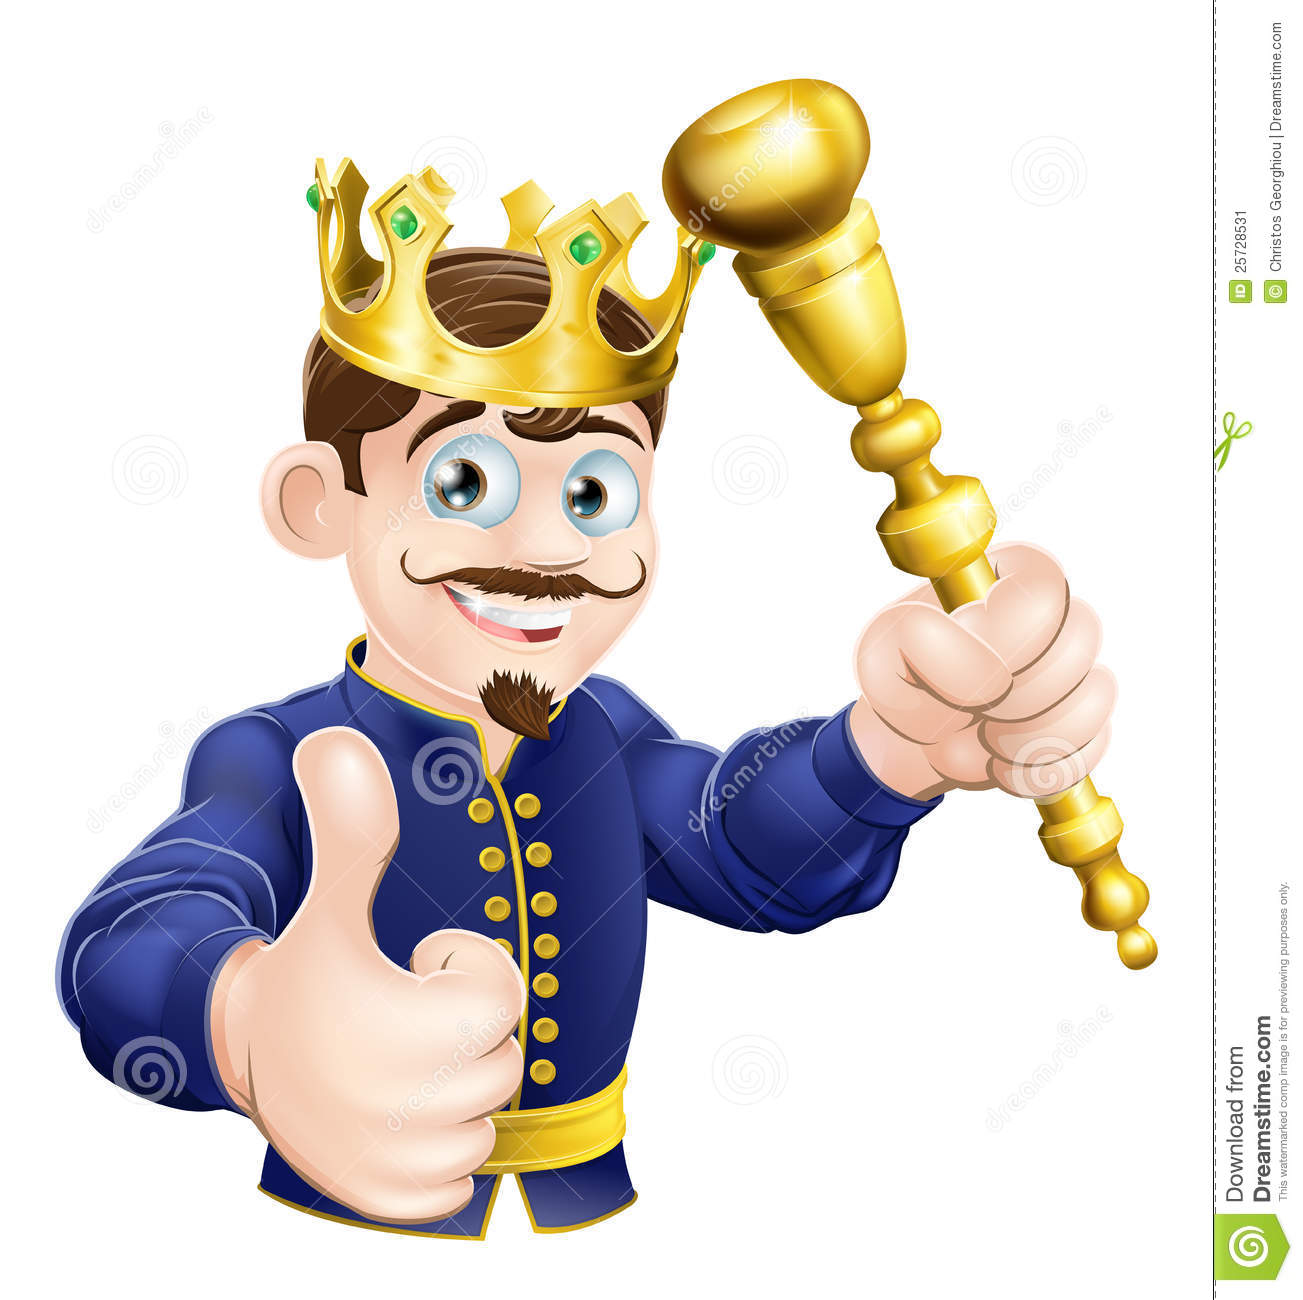 Illustration Of A Happy Cartoon King Holding Gold Sceptre